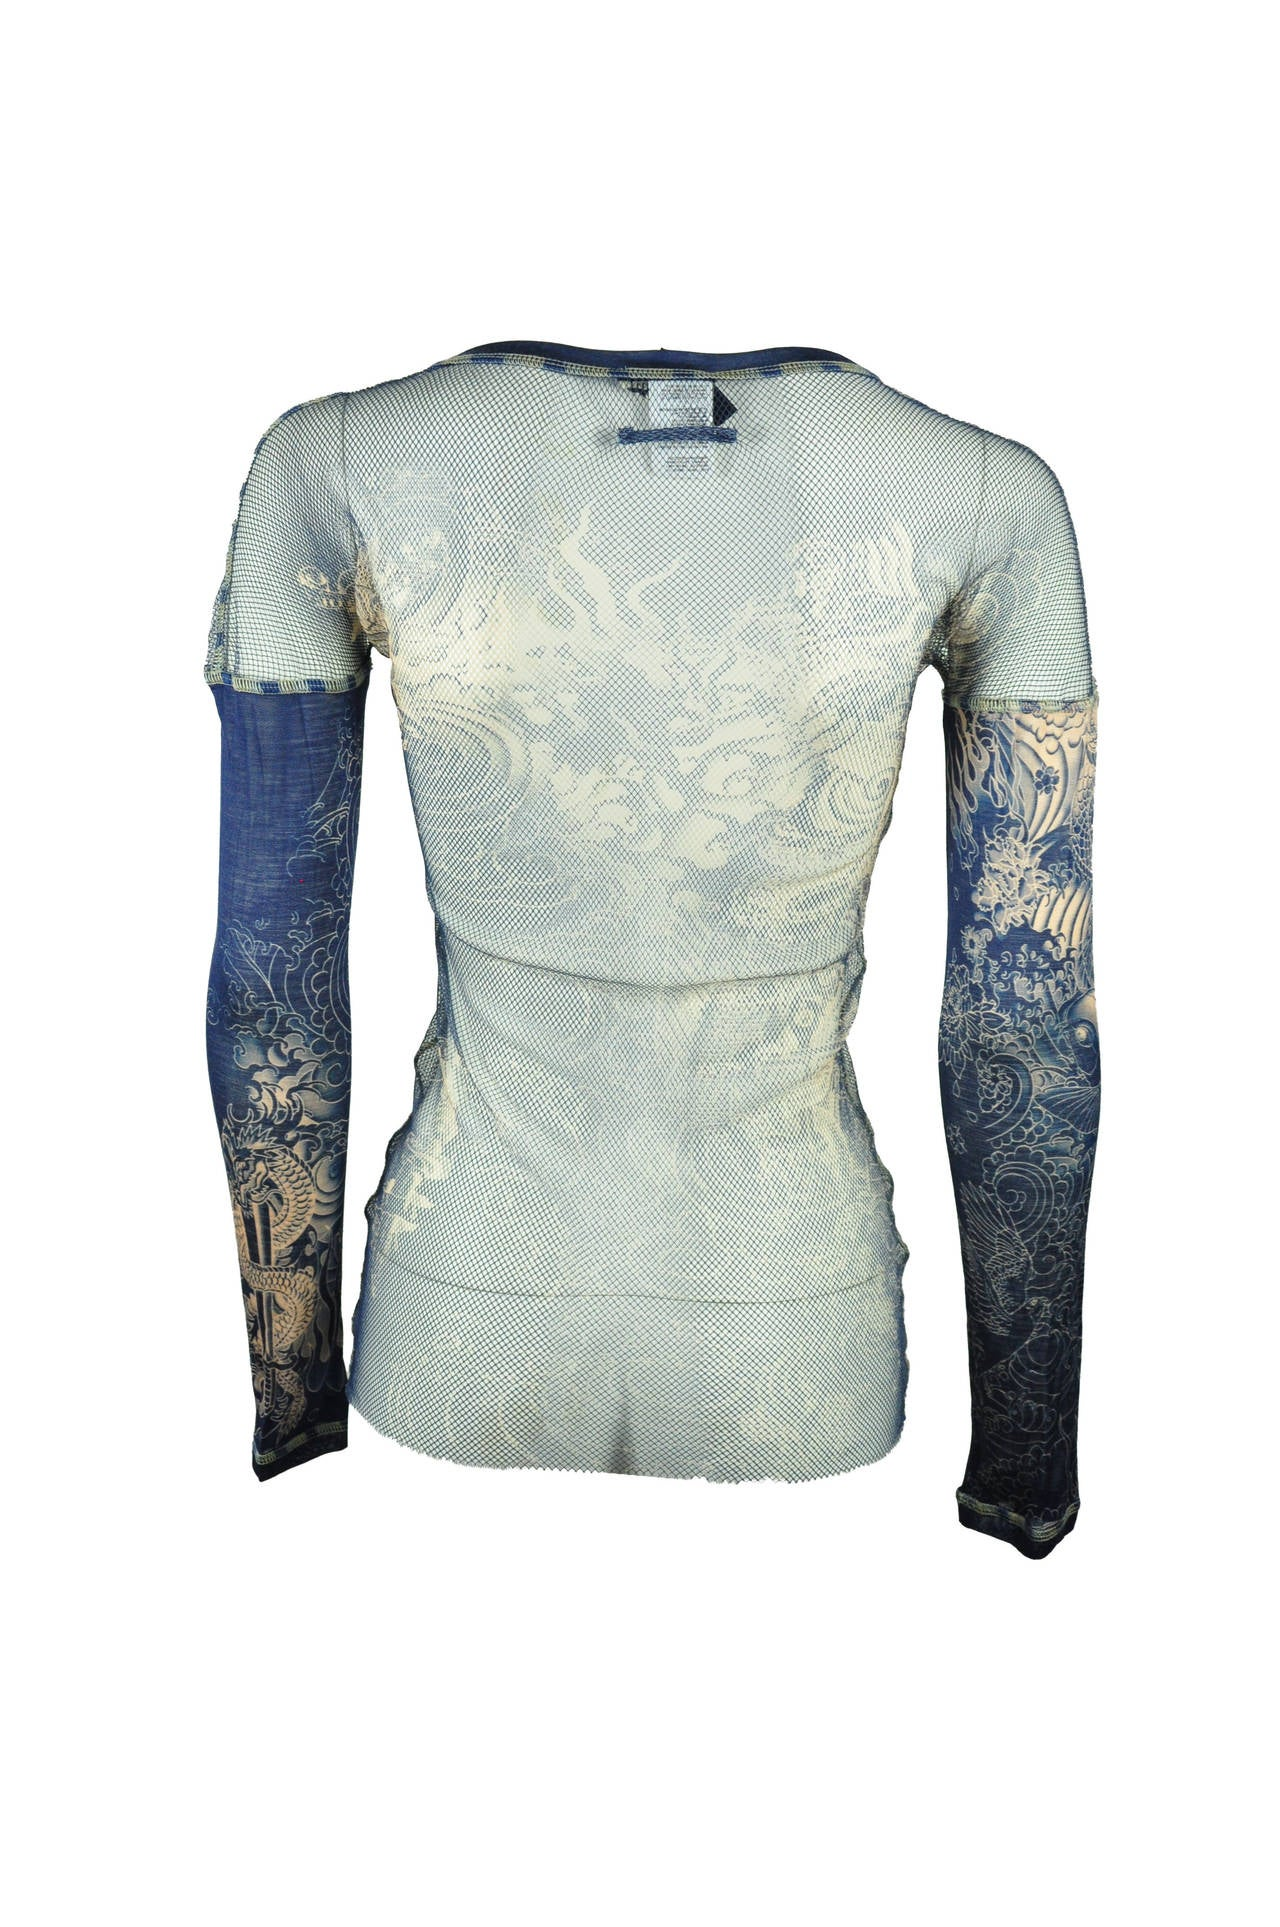 Jean Paul Gaultier Tattoo Print Mesh Top 4